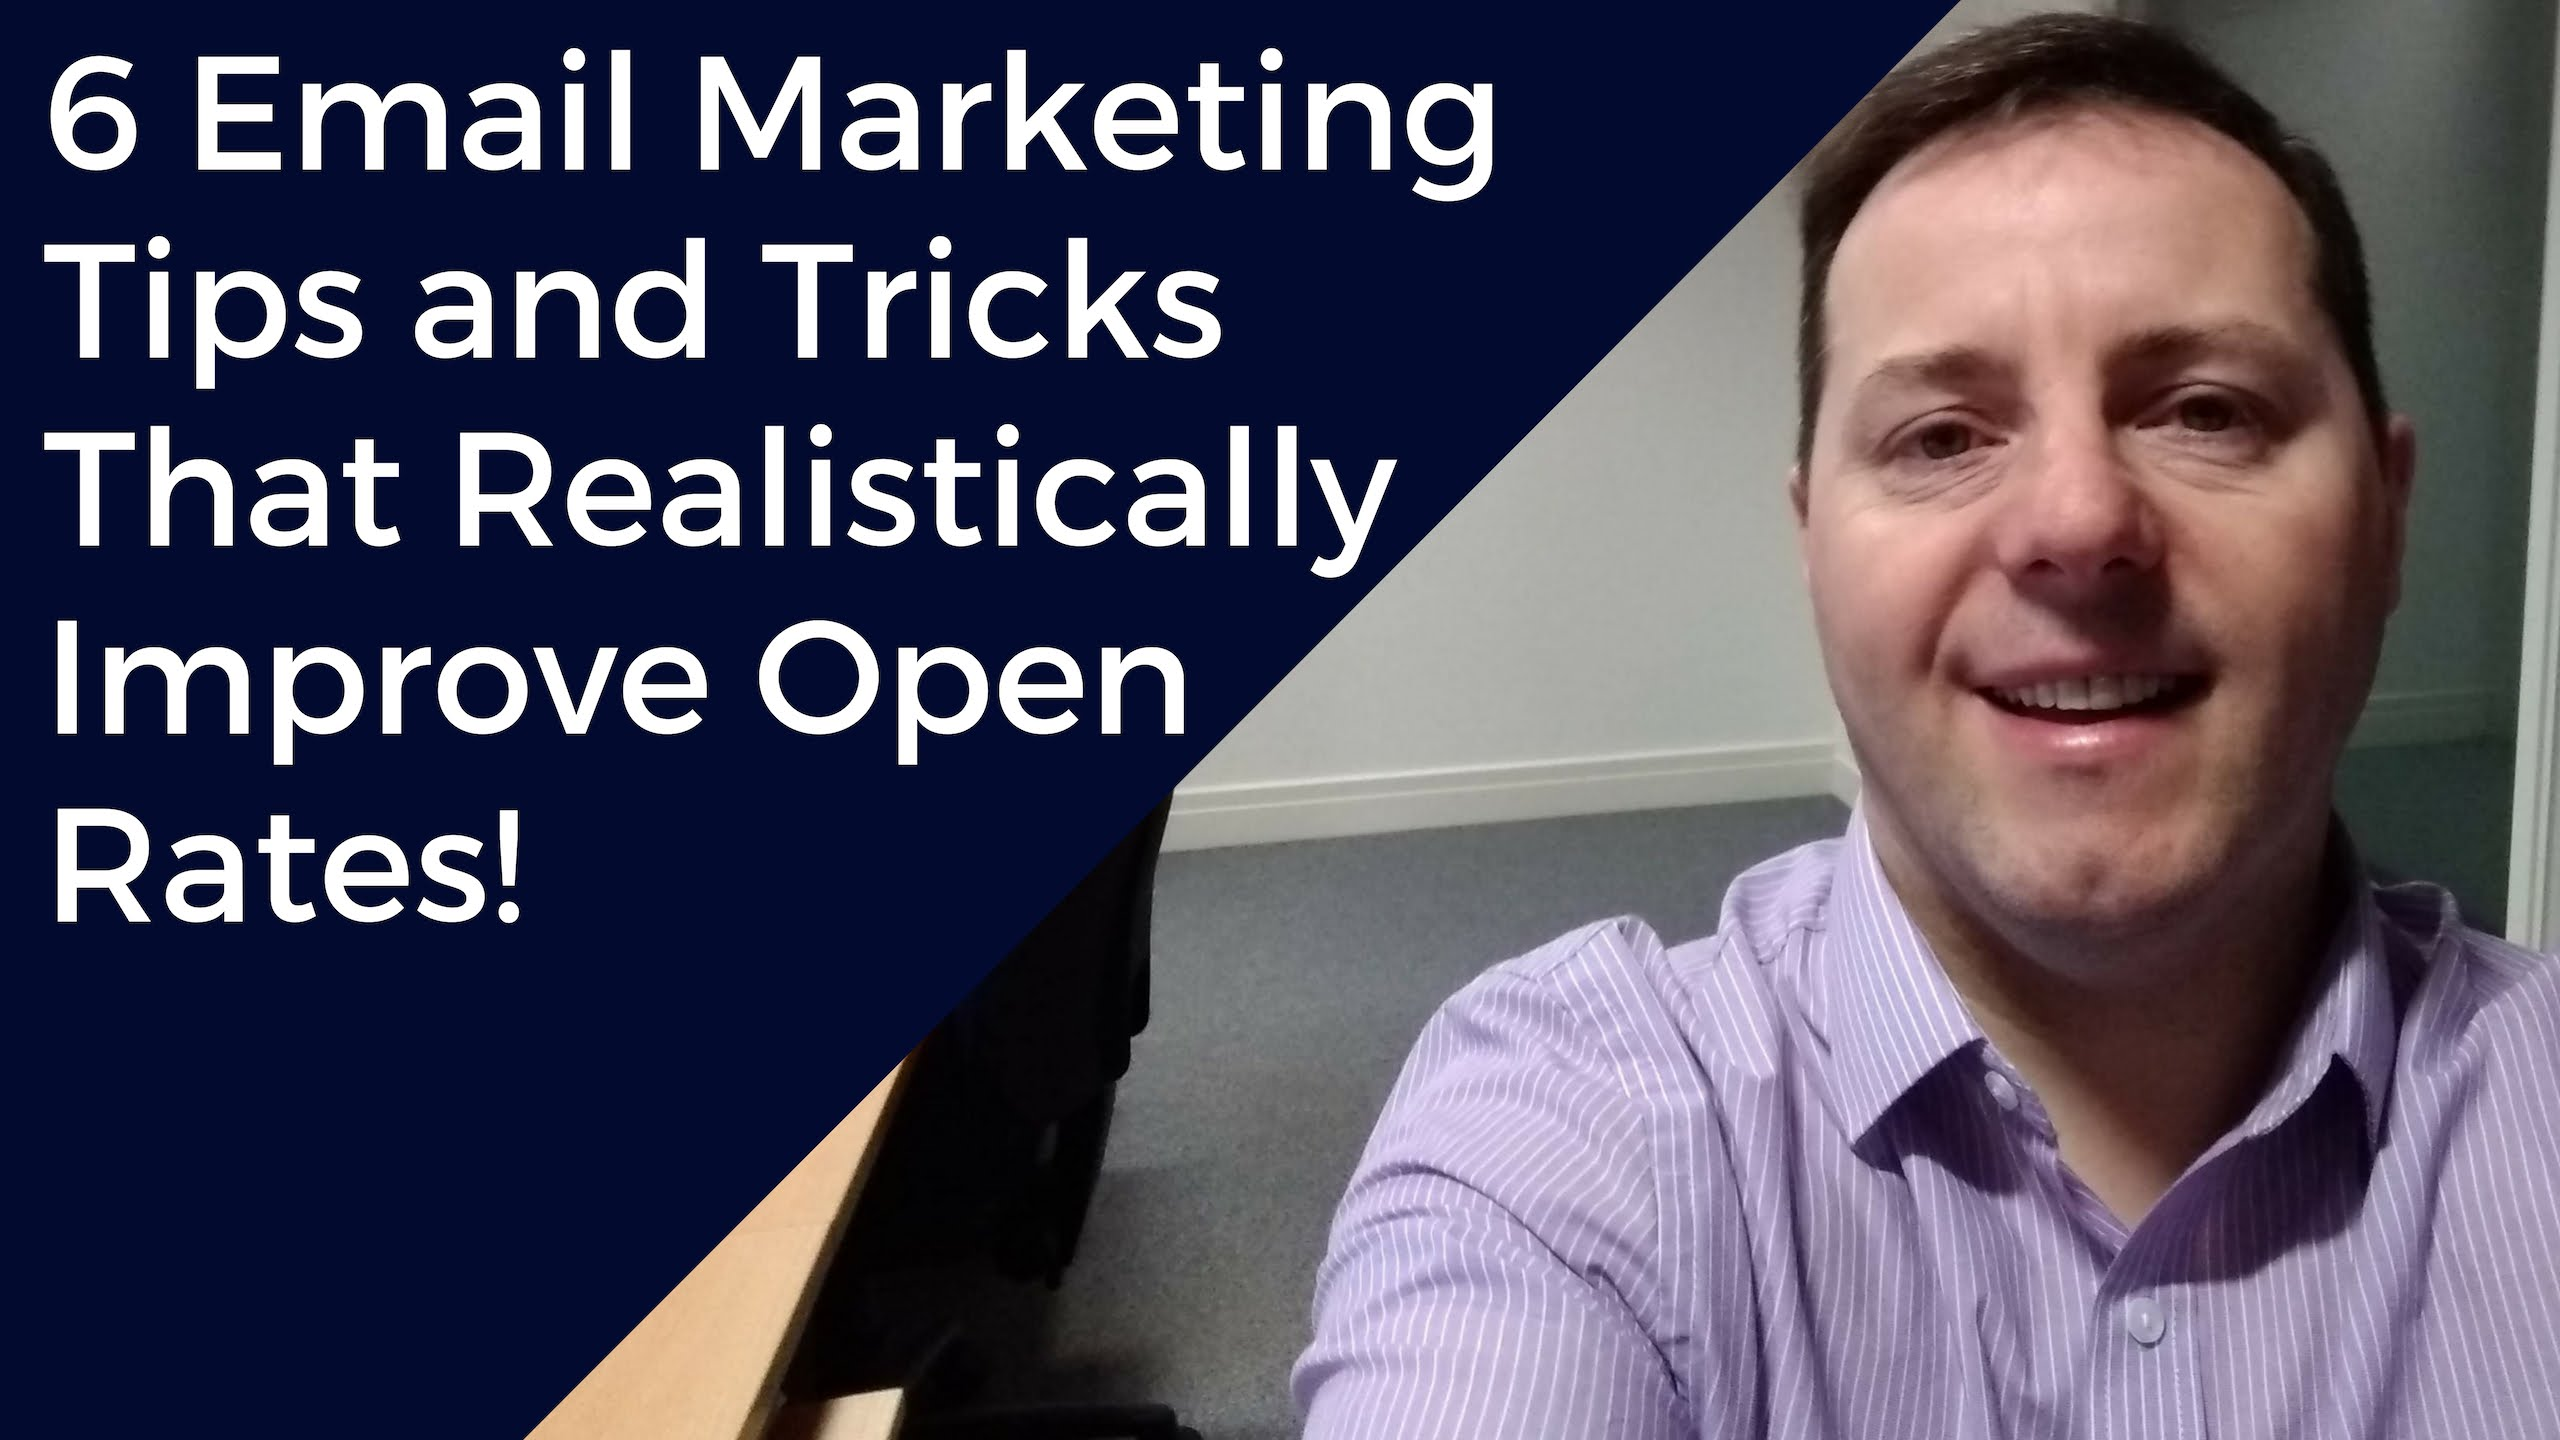 Email Marketing Tips and Tricks That Realistically Improve Open Rates